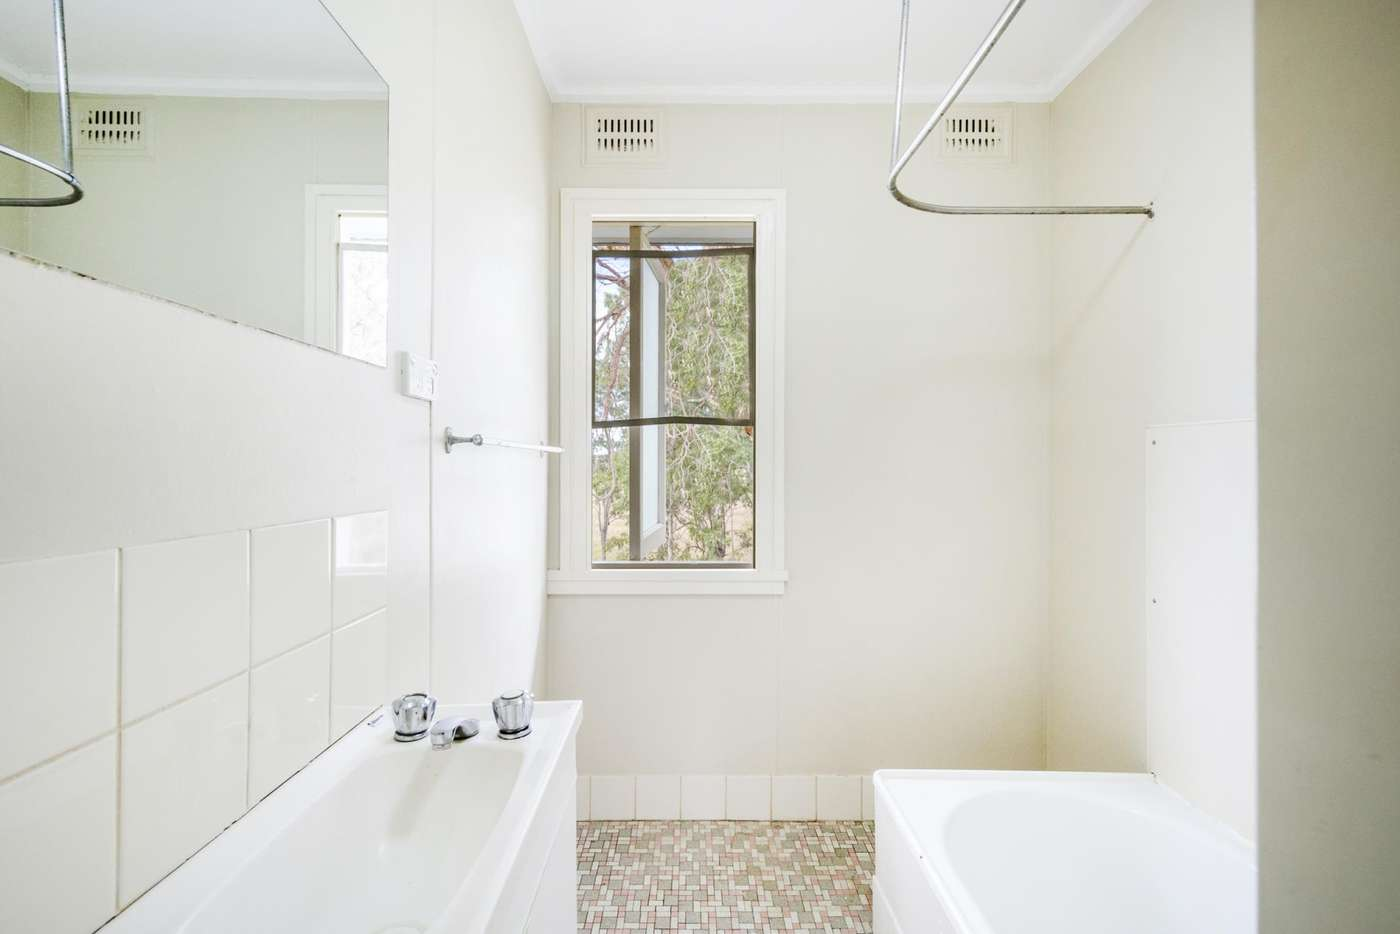 Seventh view of Homely house listing, 32 Maxwell Avenue, South Grafton NSW 2460